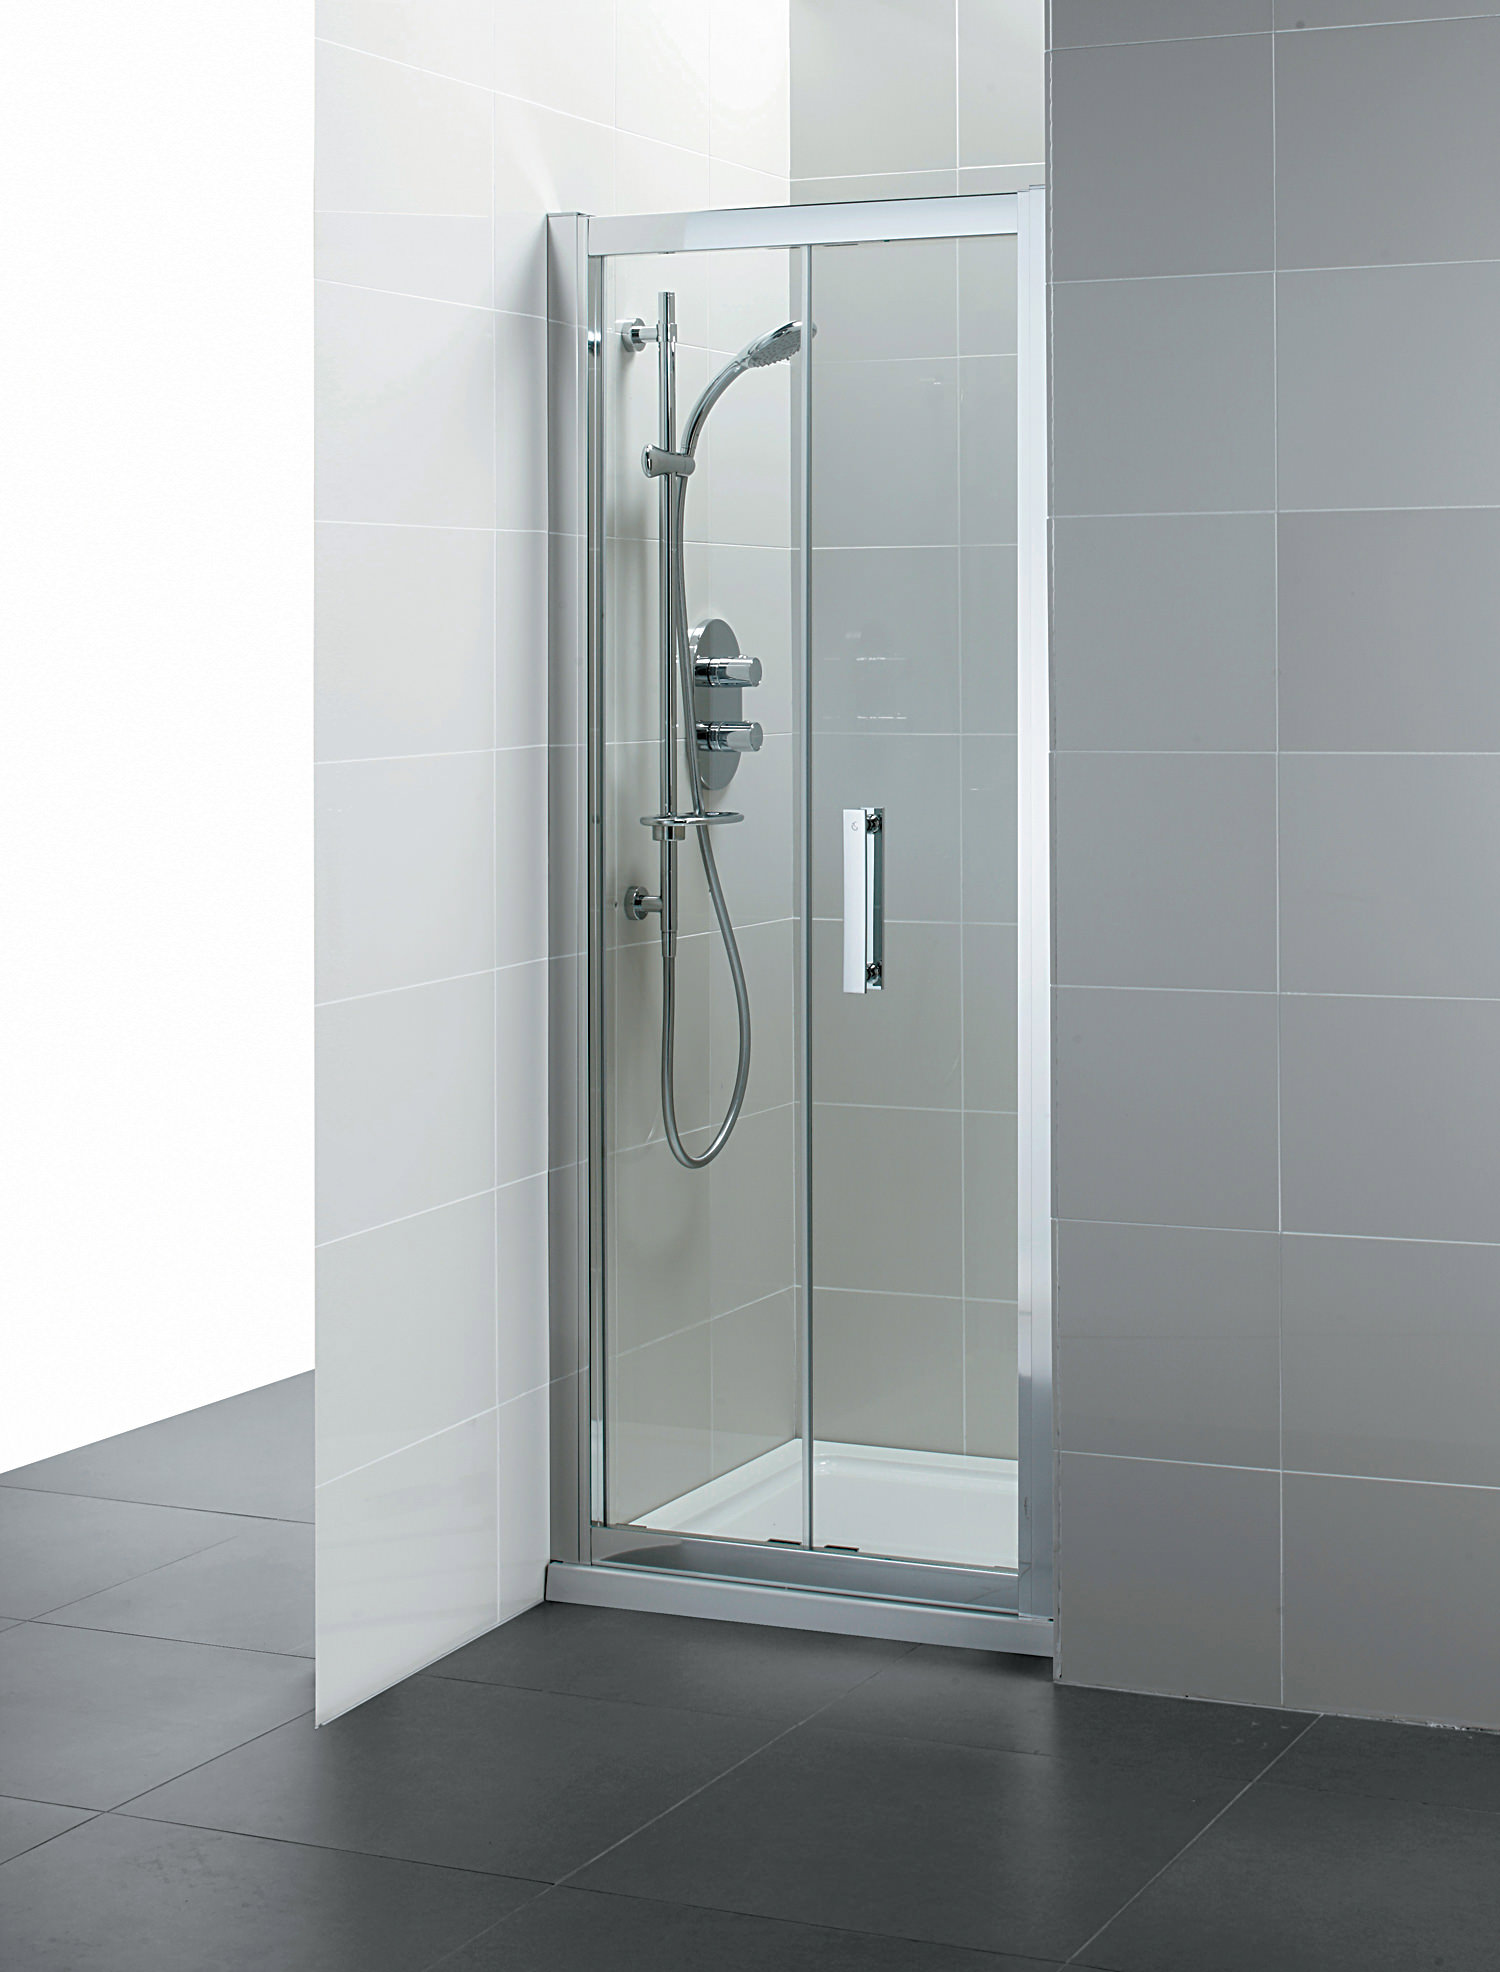 Shower Seals For Curved Glass Doors